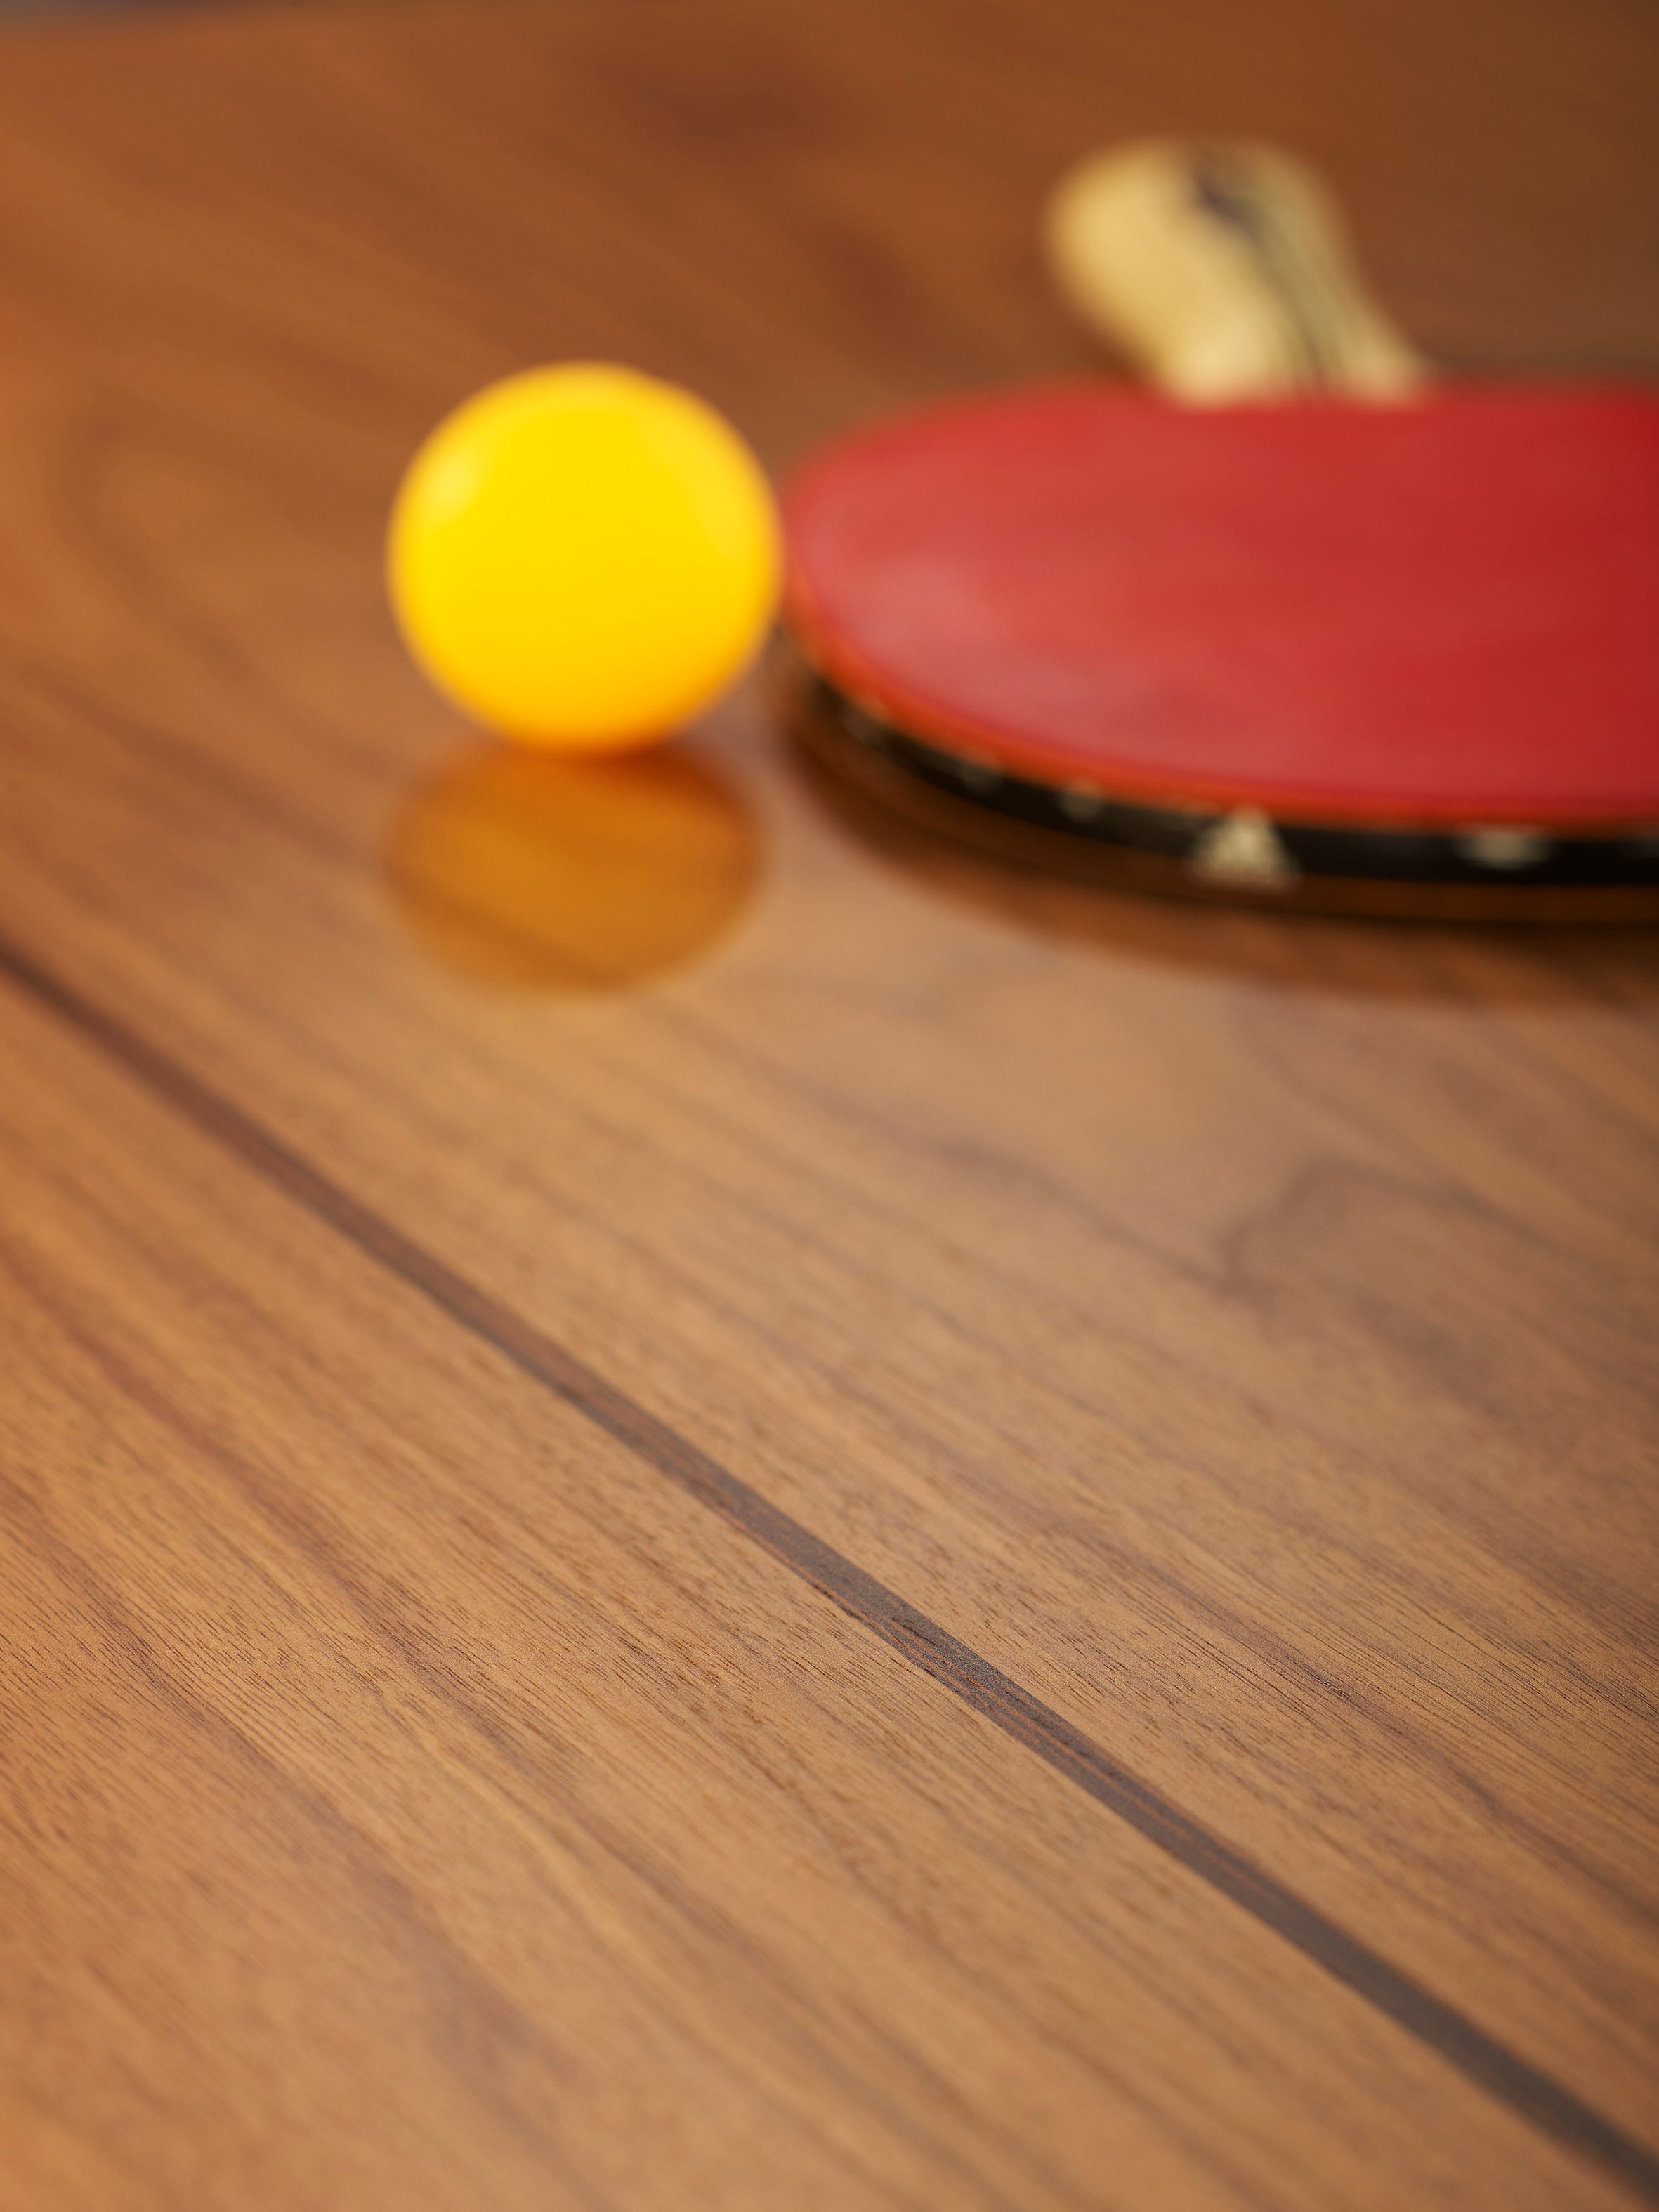 RS Barcelona You and Me Ping Pong Wood Top - Blatt Billiards